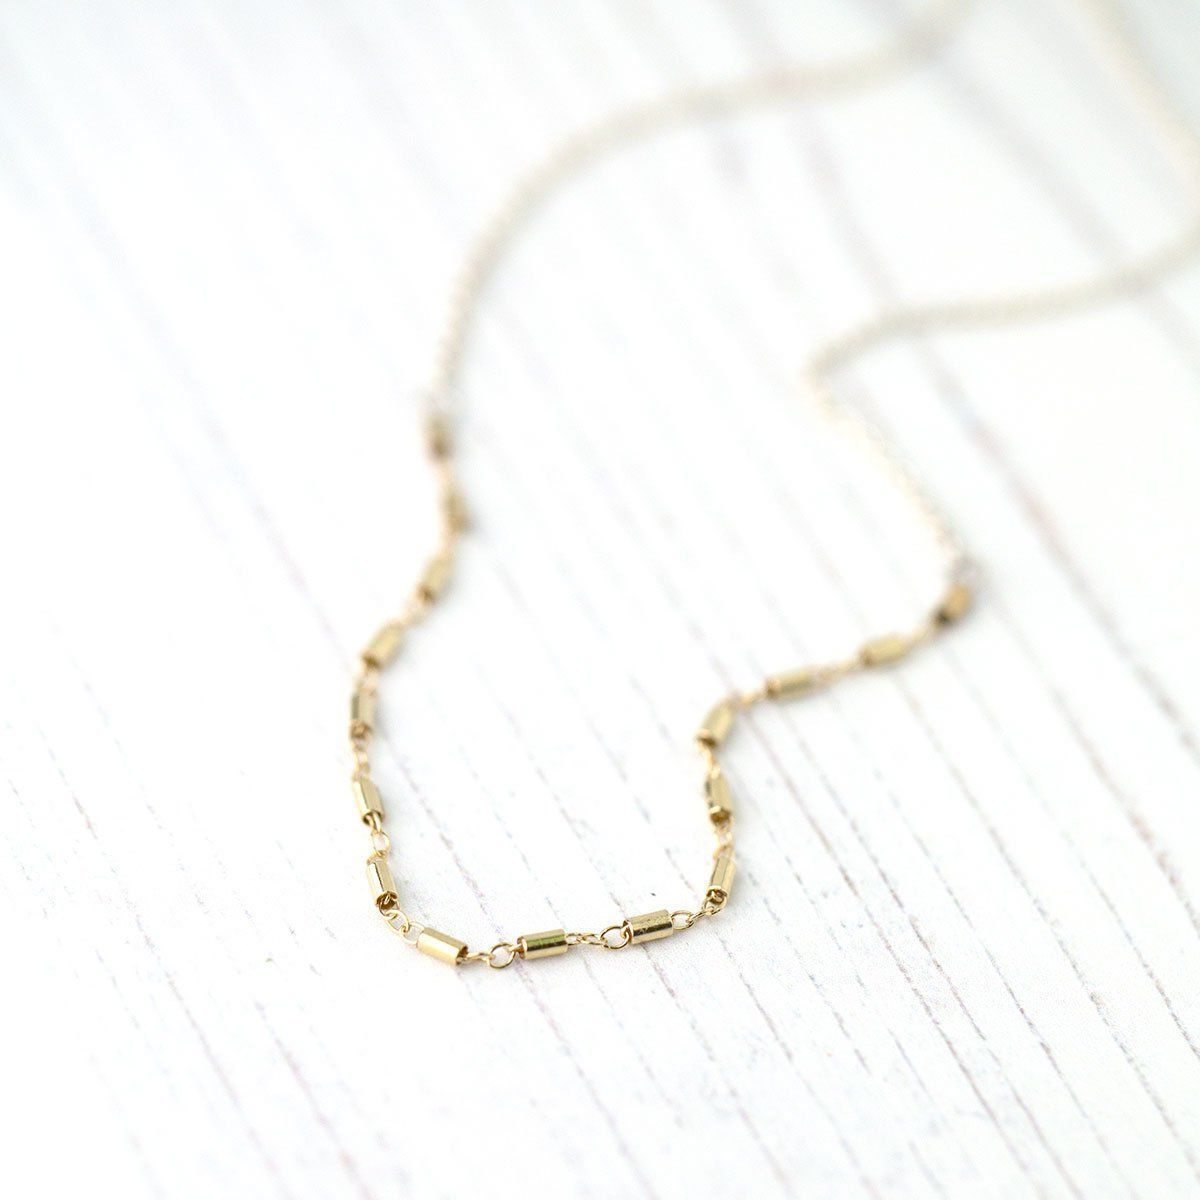 Mixed Metals Gold & Silver Necklace - Handmade Jewelry by Burnish